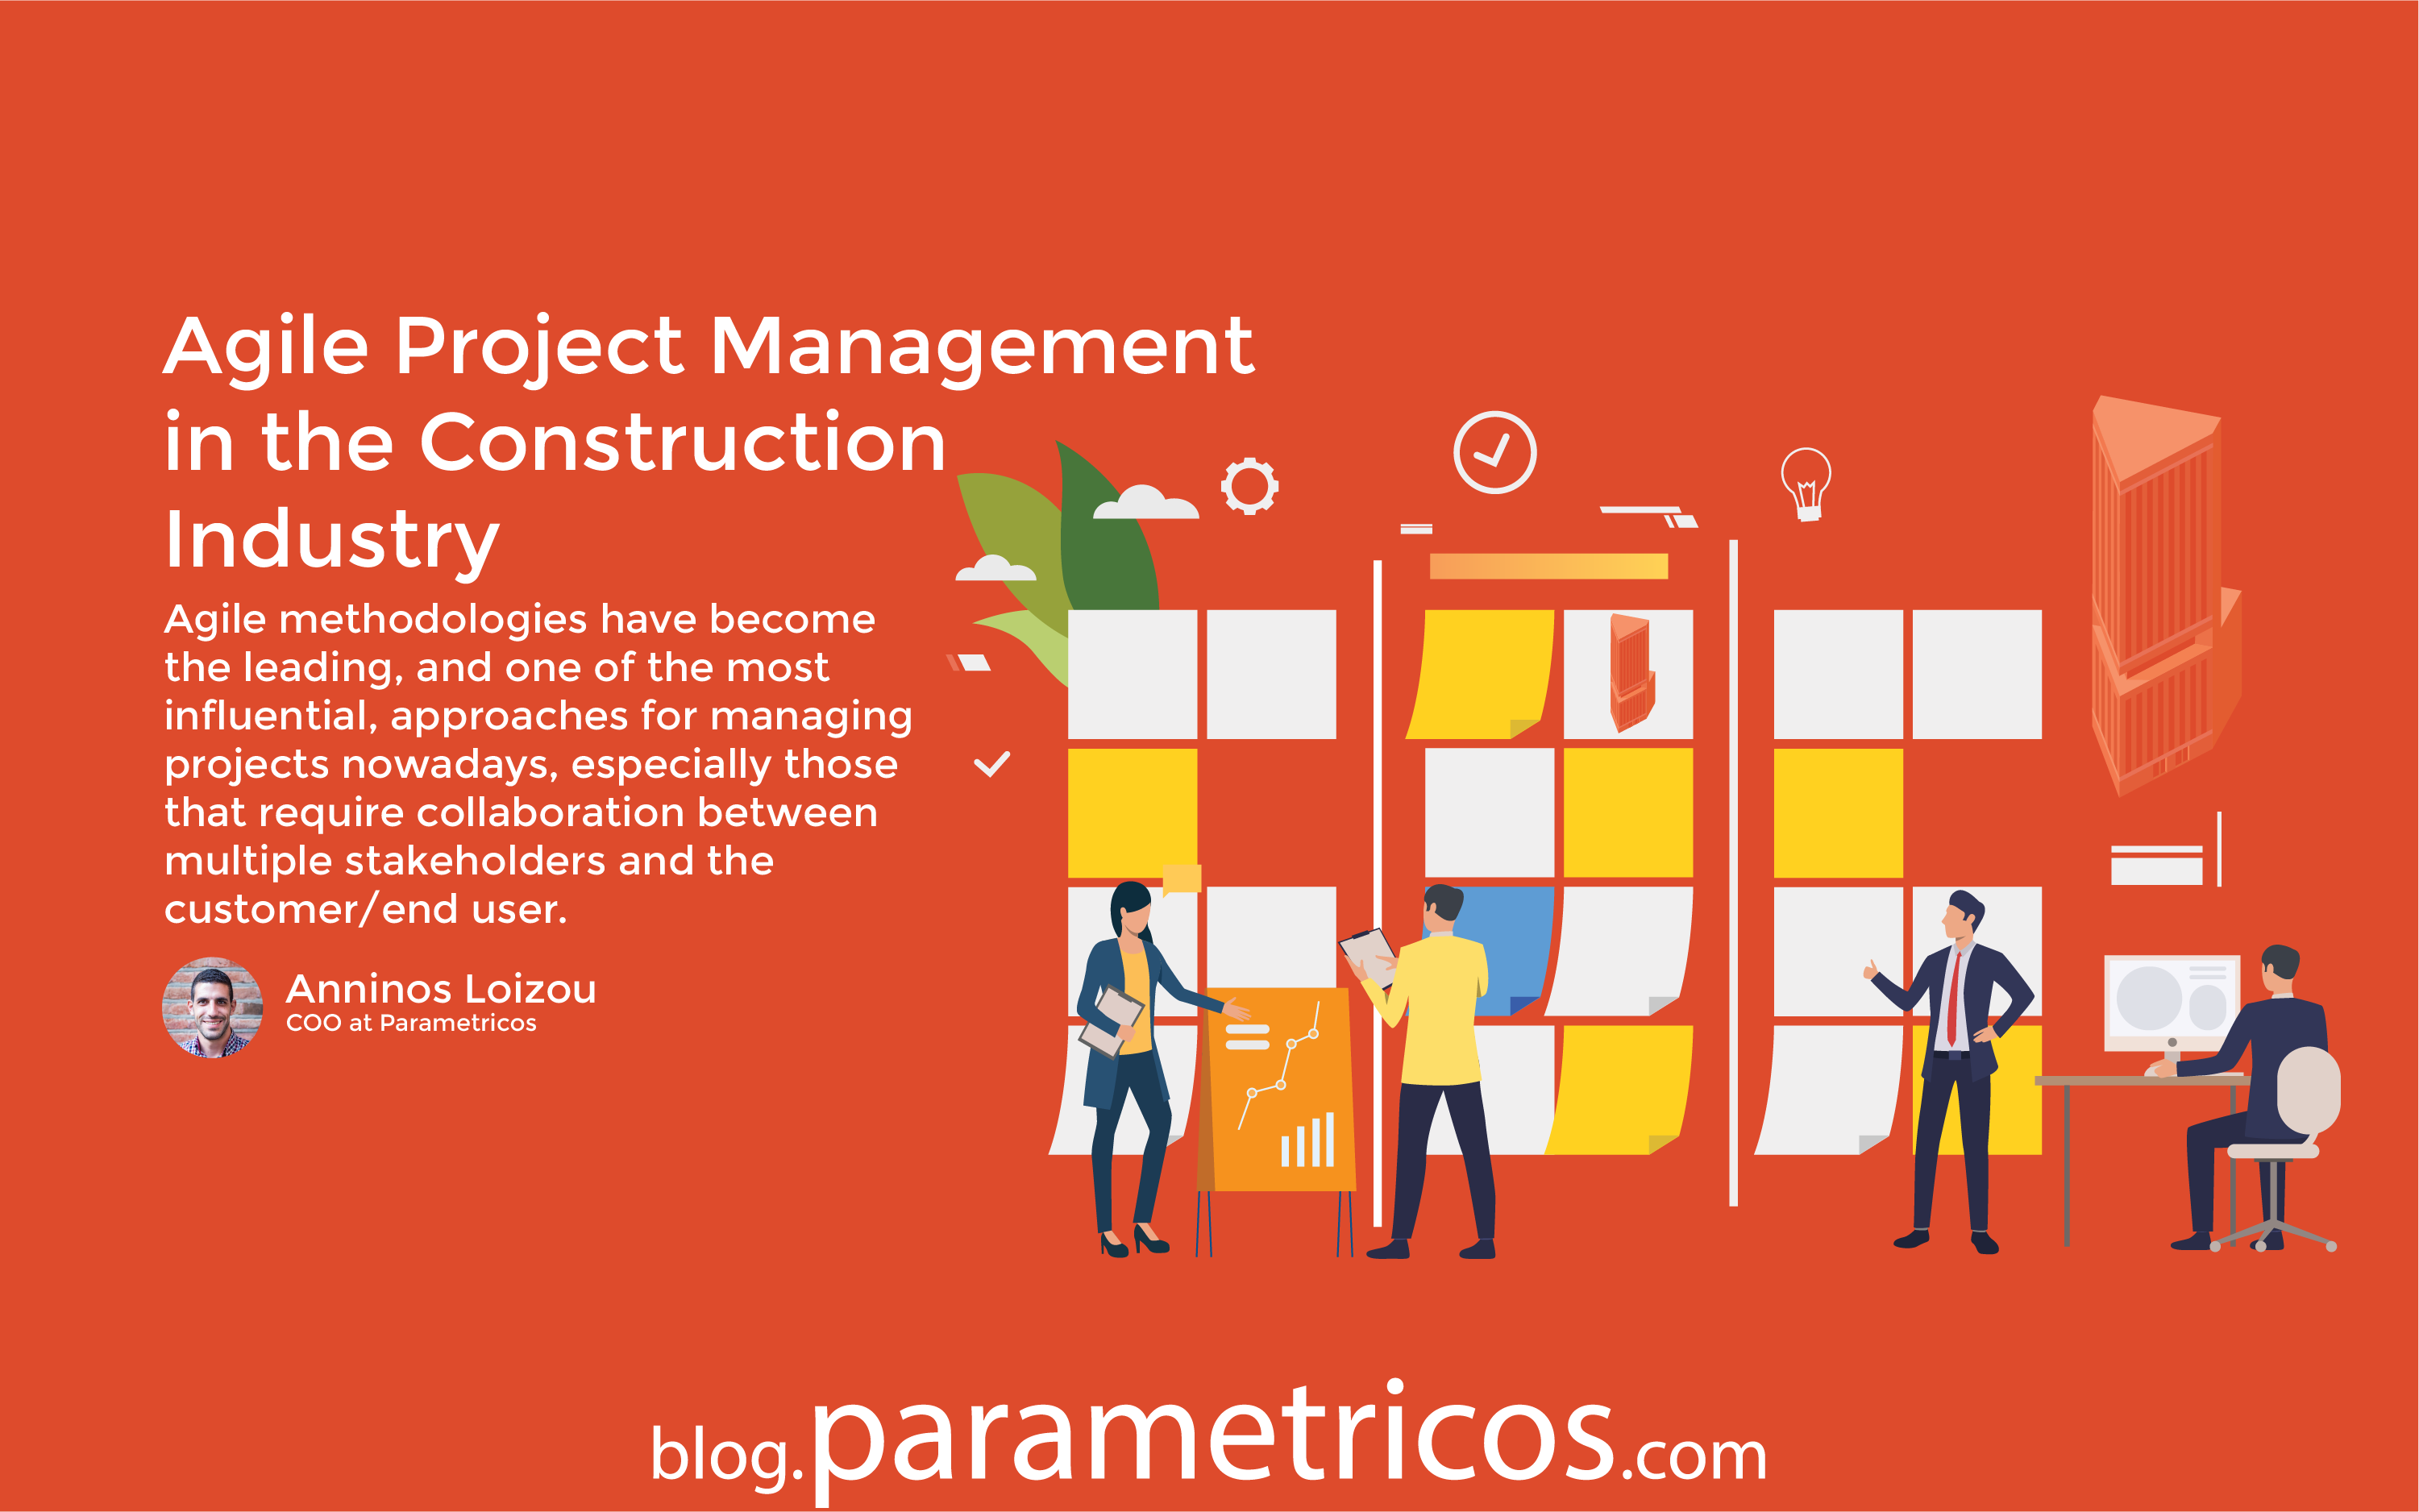 Agile project management in the construction industry